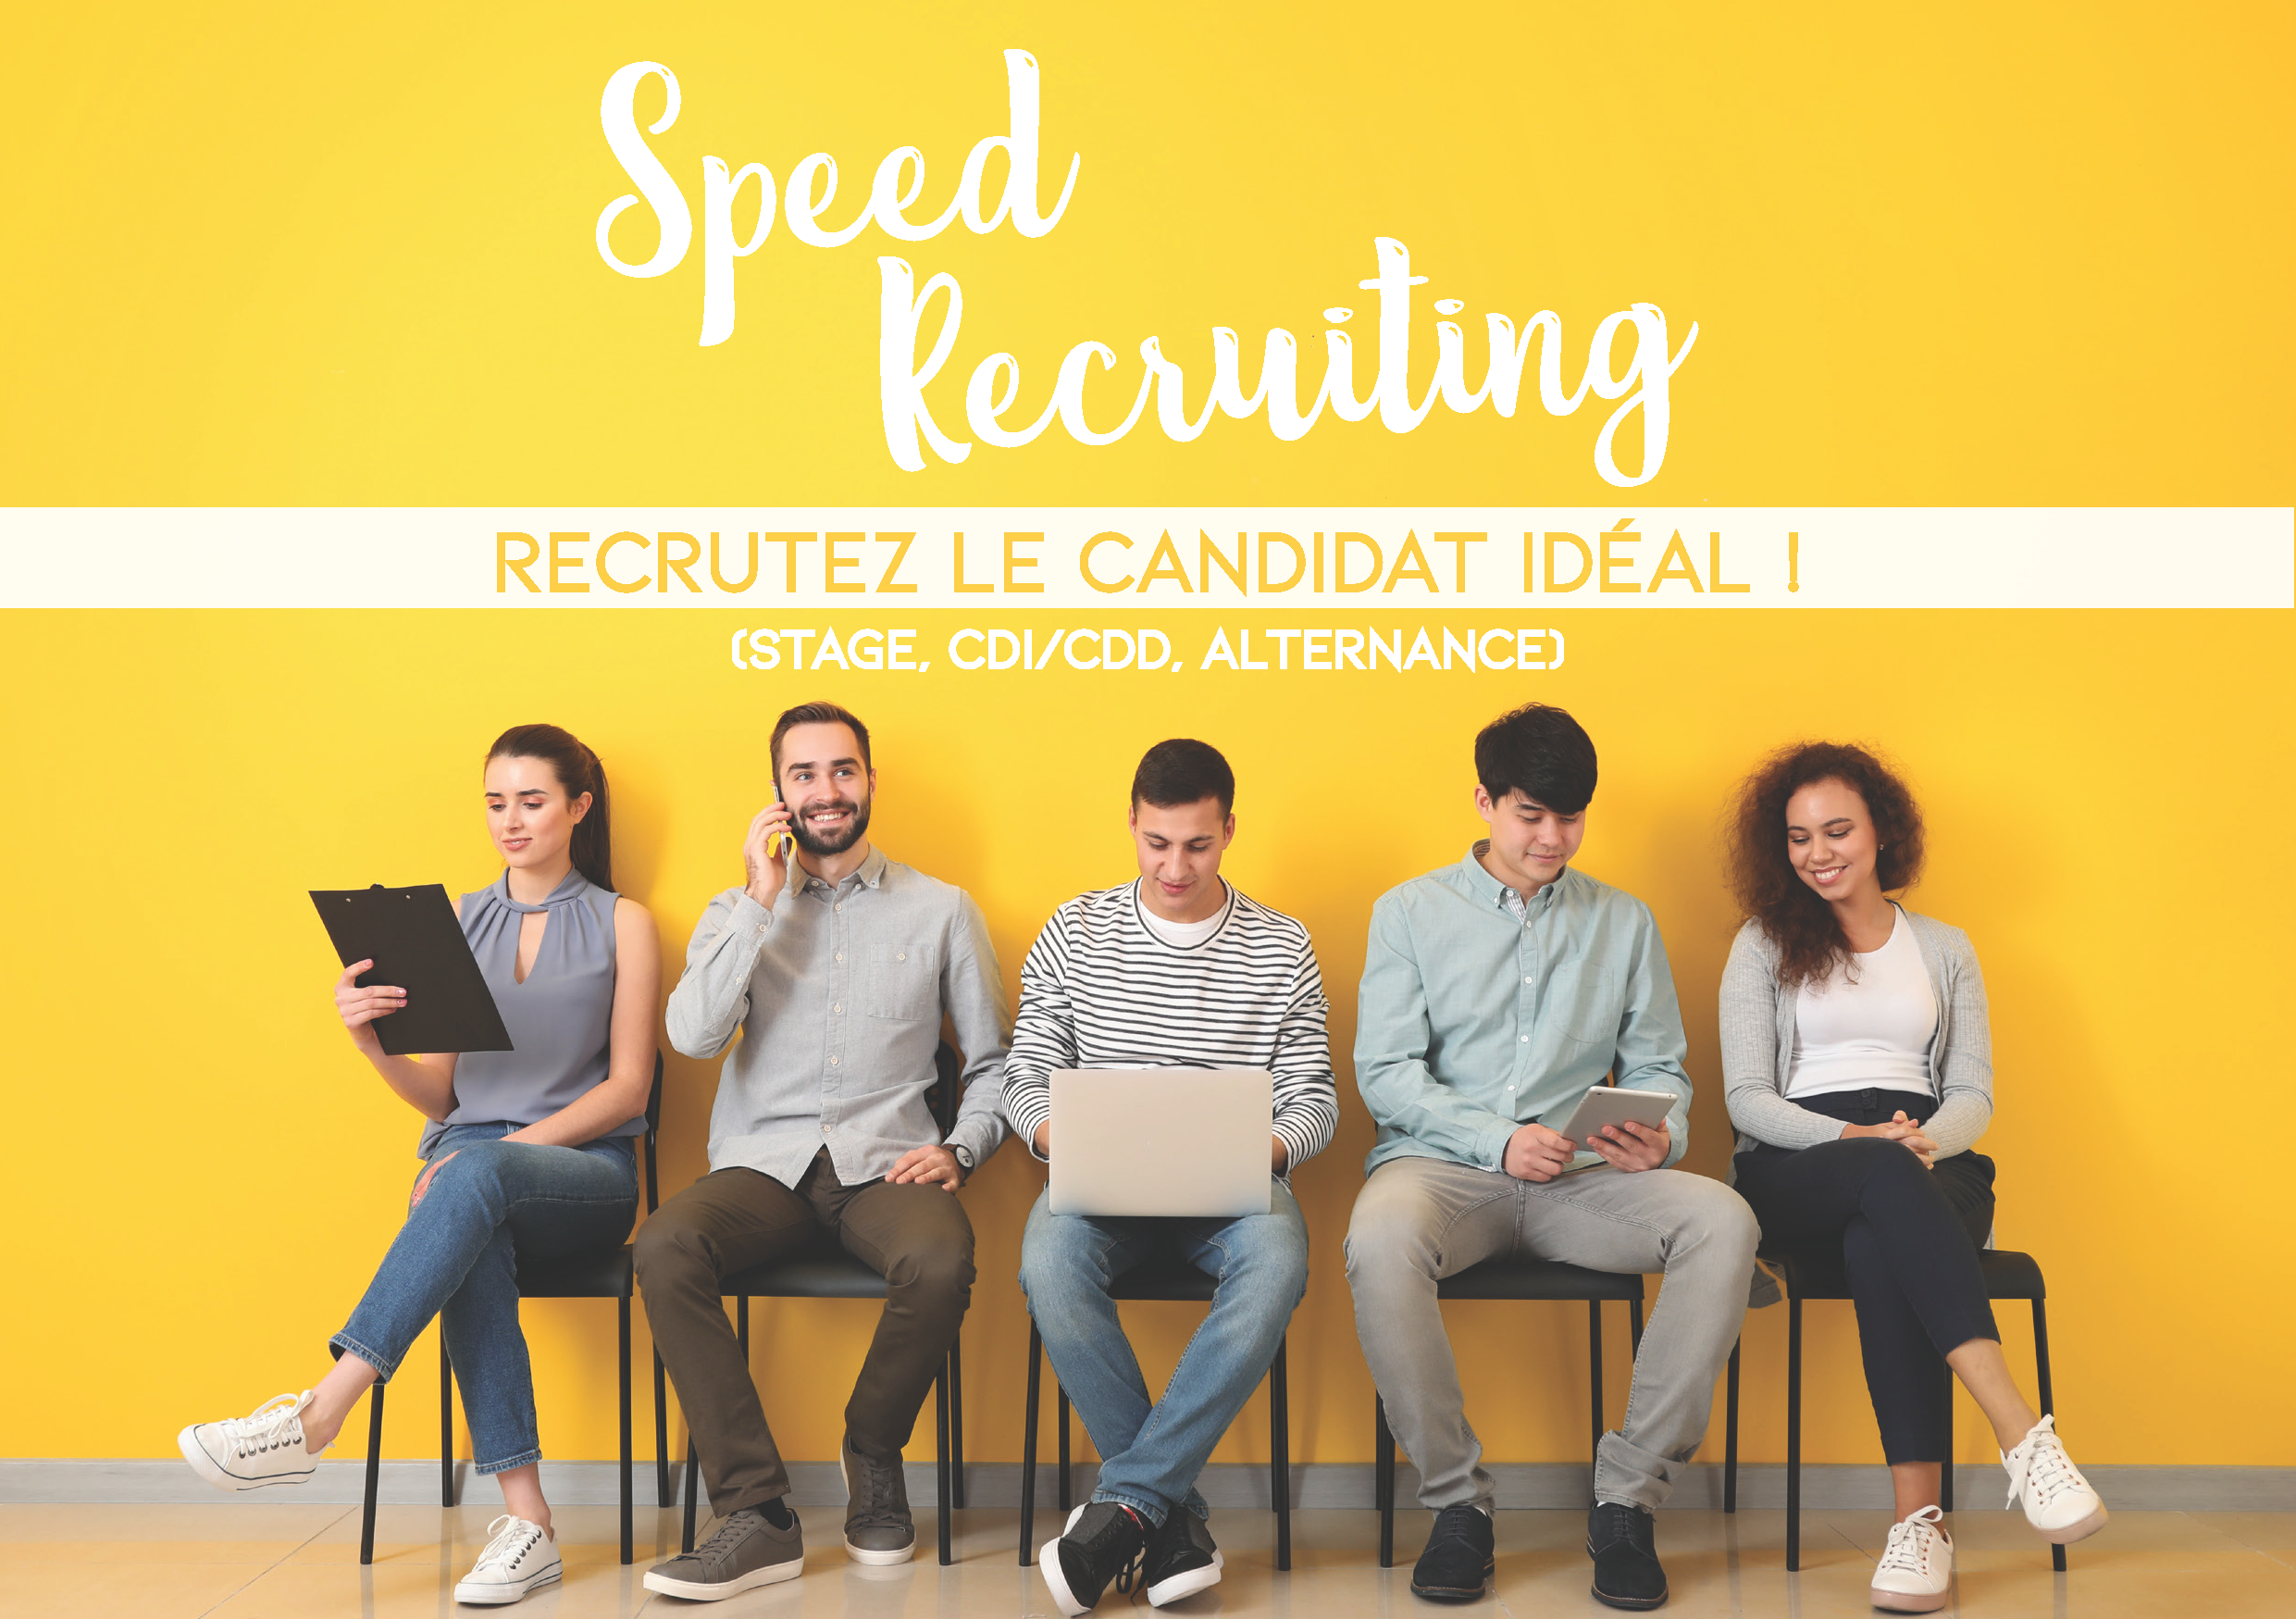 image-speed-recruiting-etudiant-fevrier